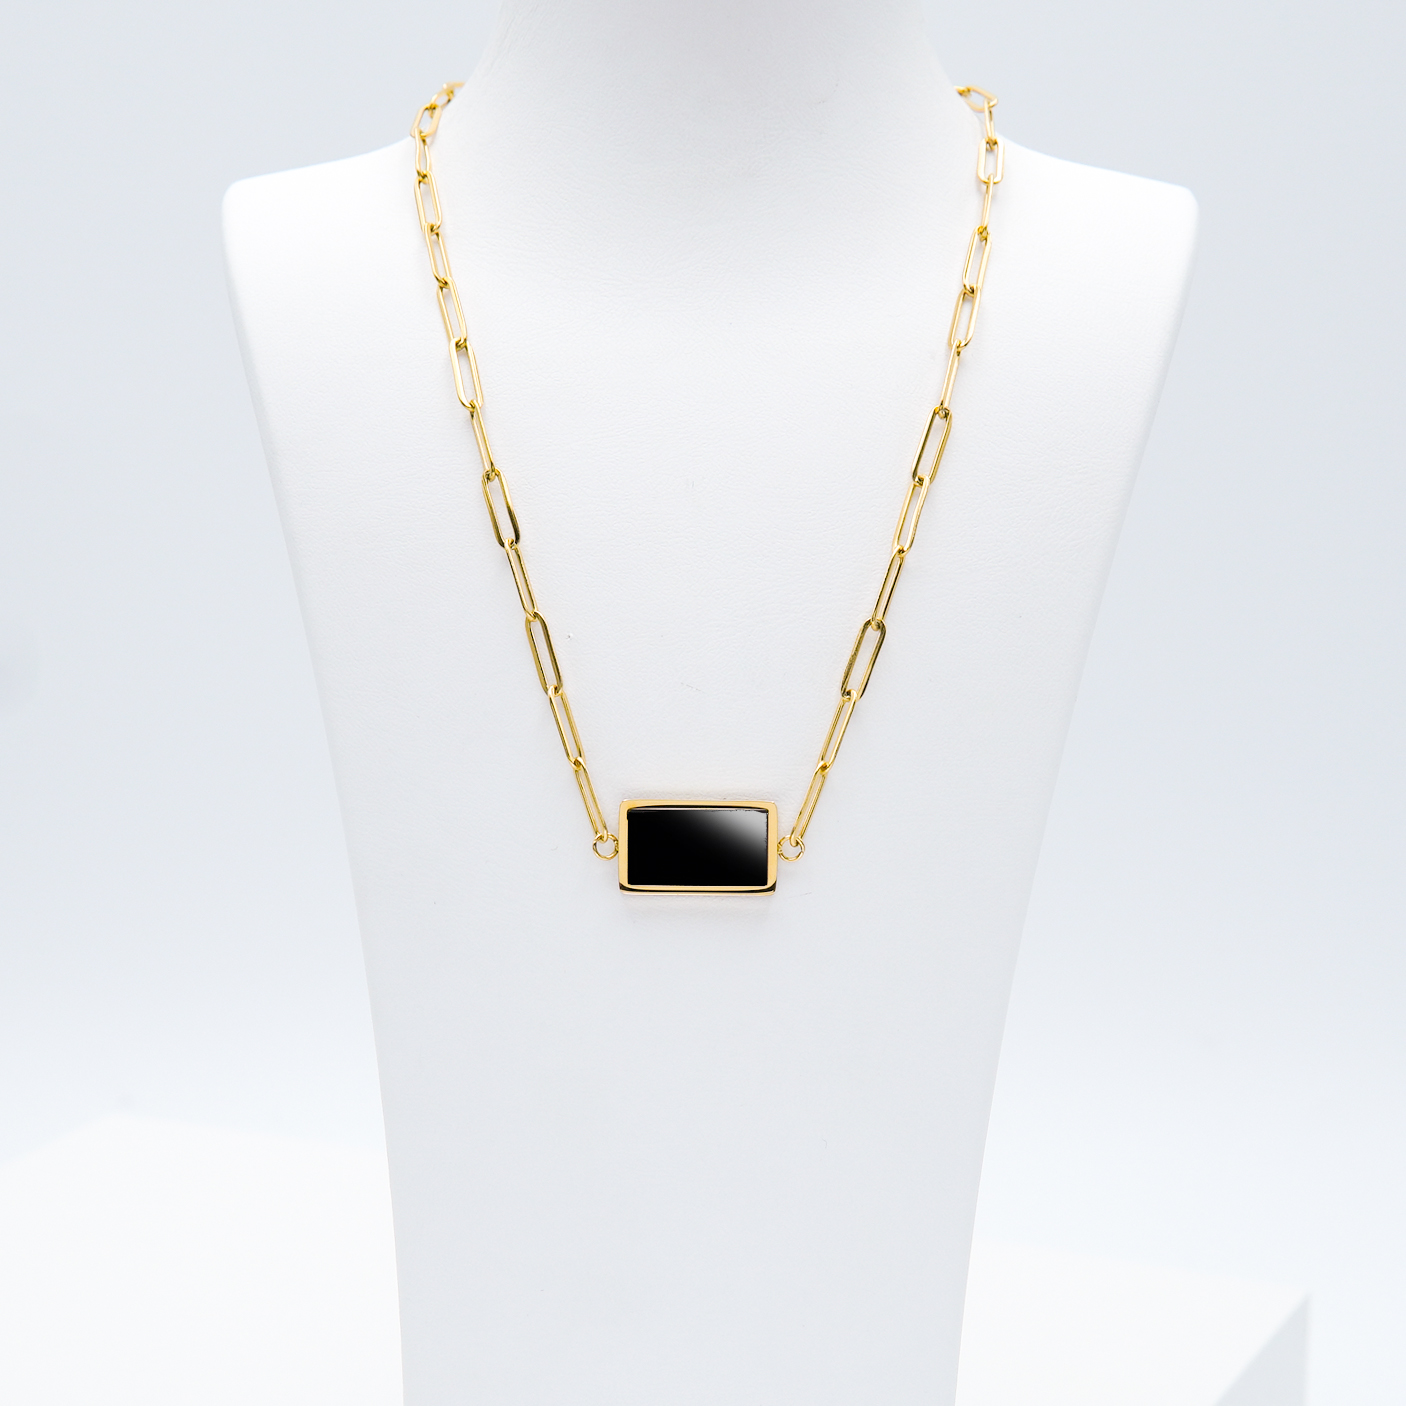 2- Gold in night Gold Edition Halsband Modern and trendy Necklace and women jewelry and accessories from SWEVALI fashion Sweden